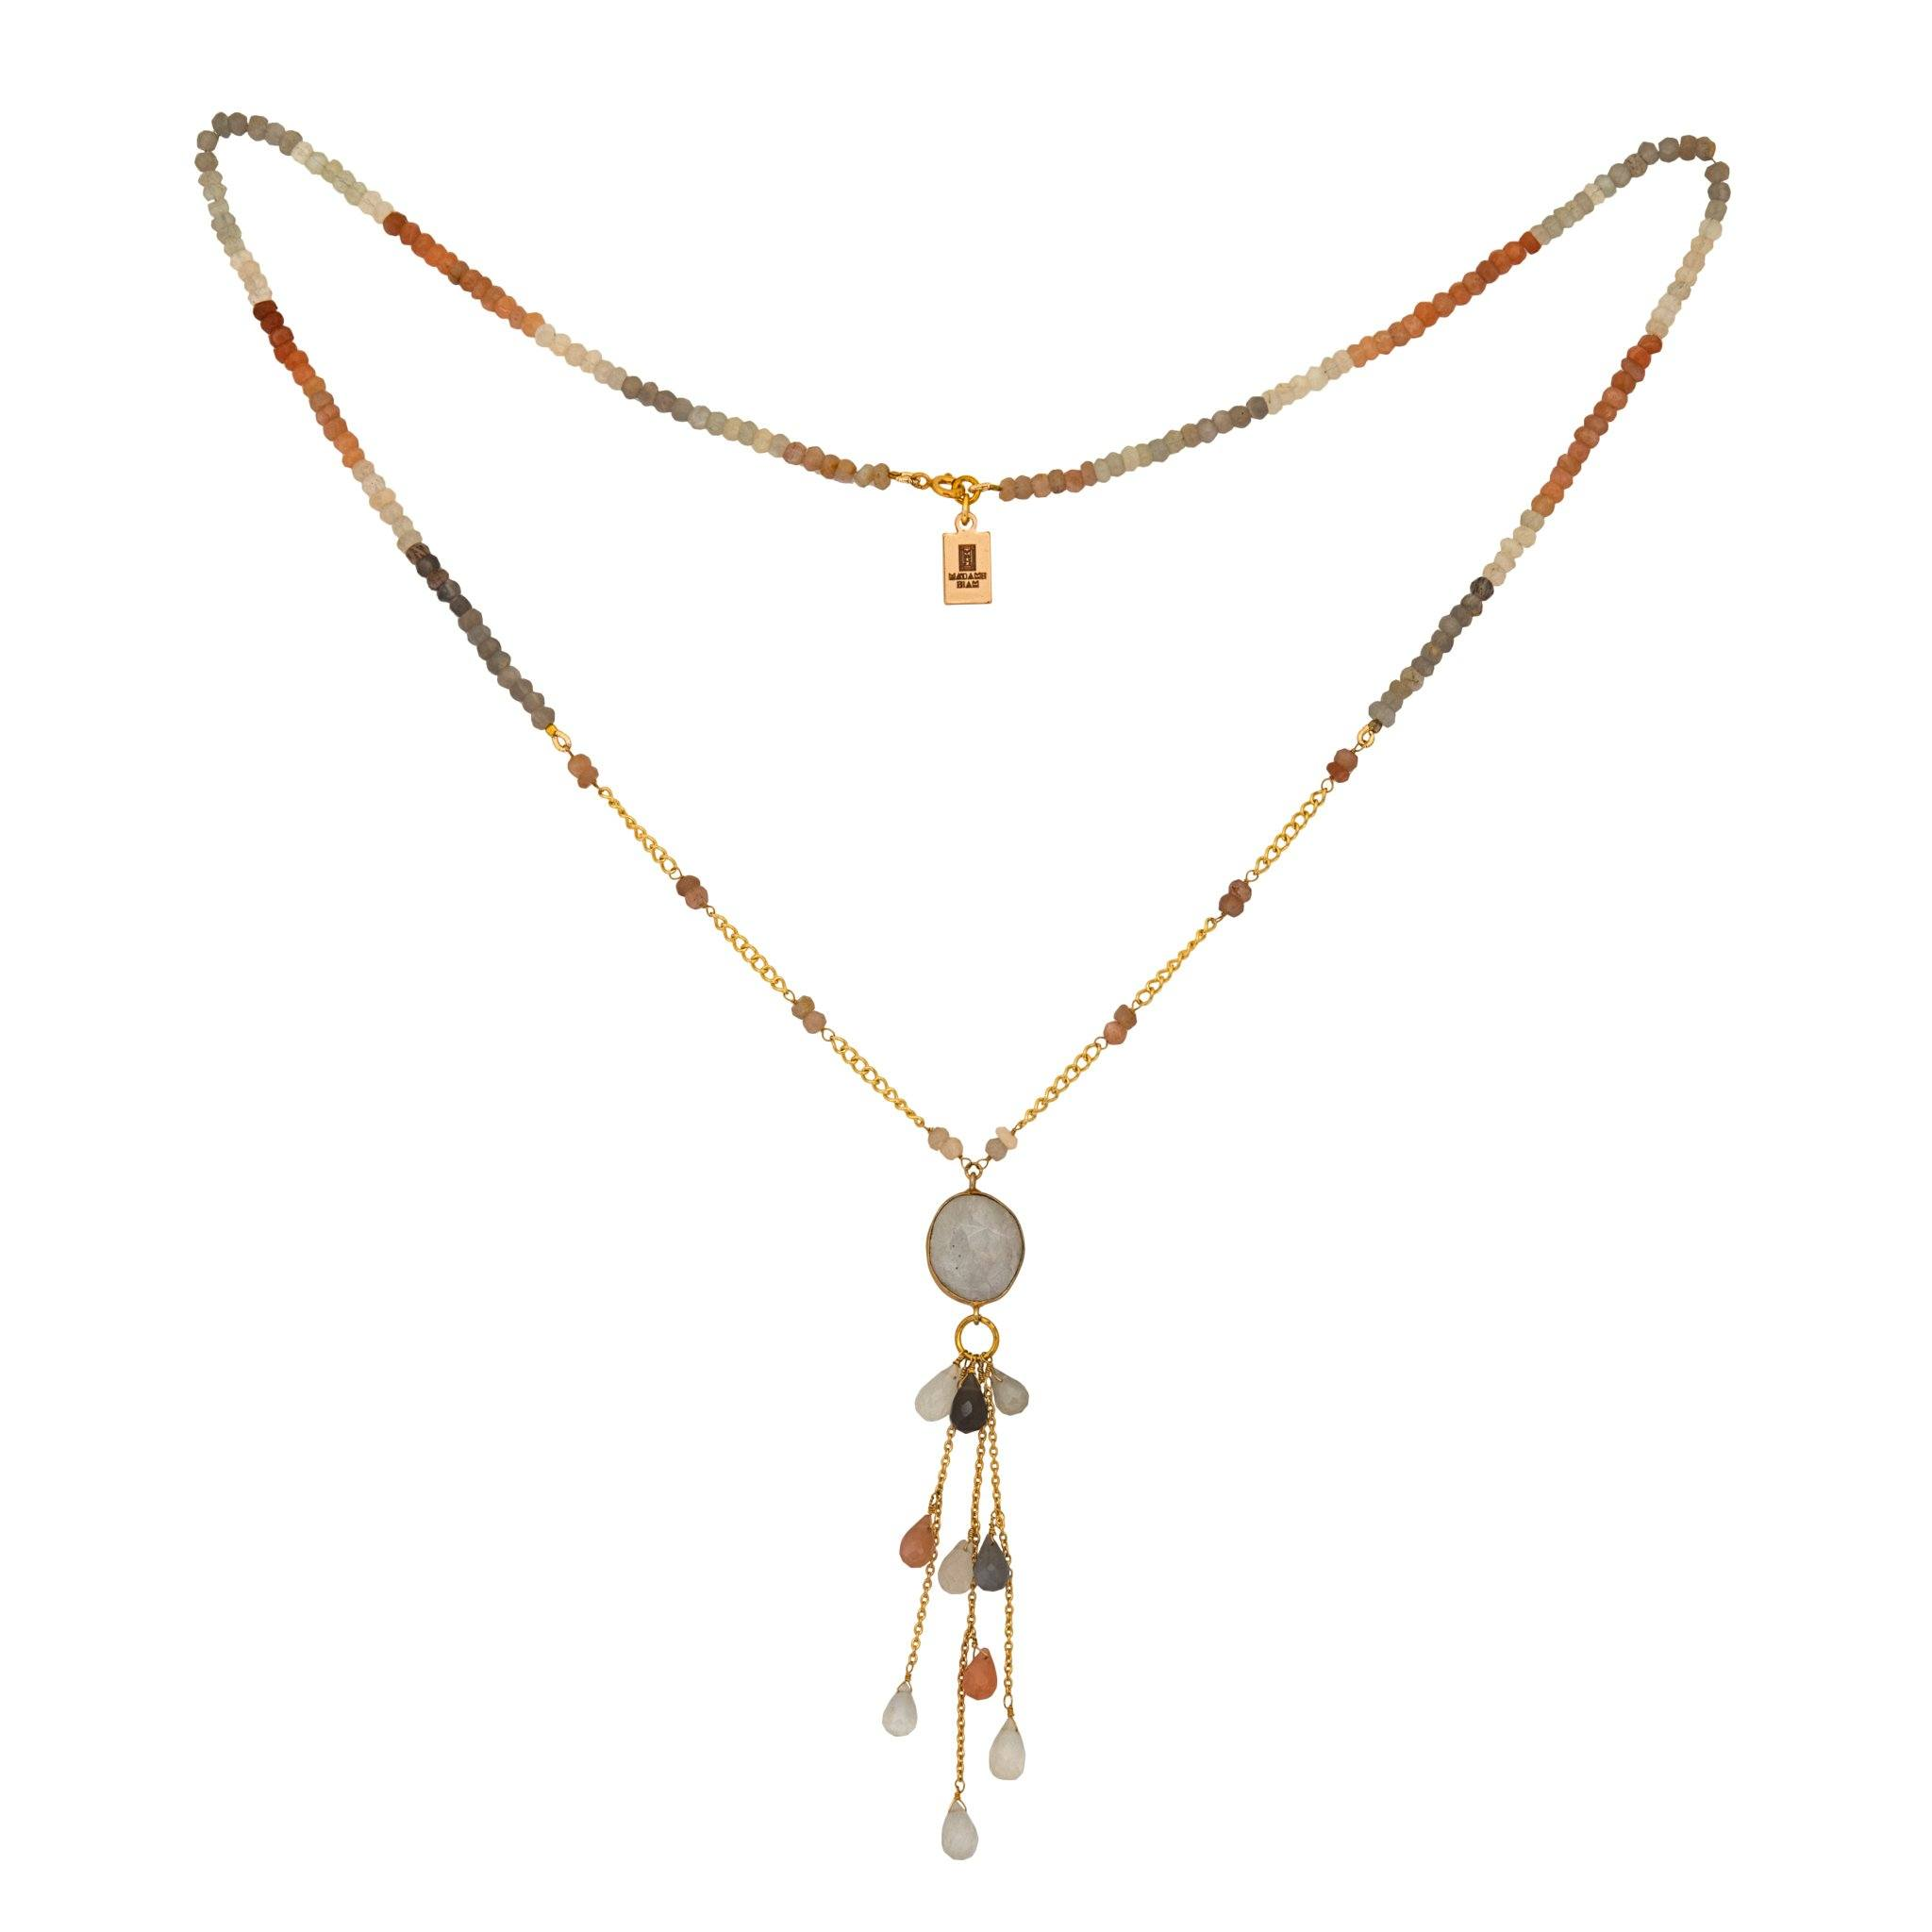 LUZ mix of moonstone necklace with drops - MadamSiam